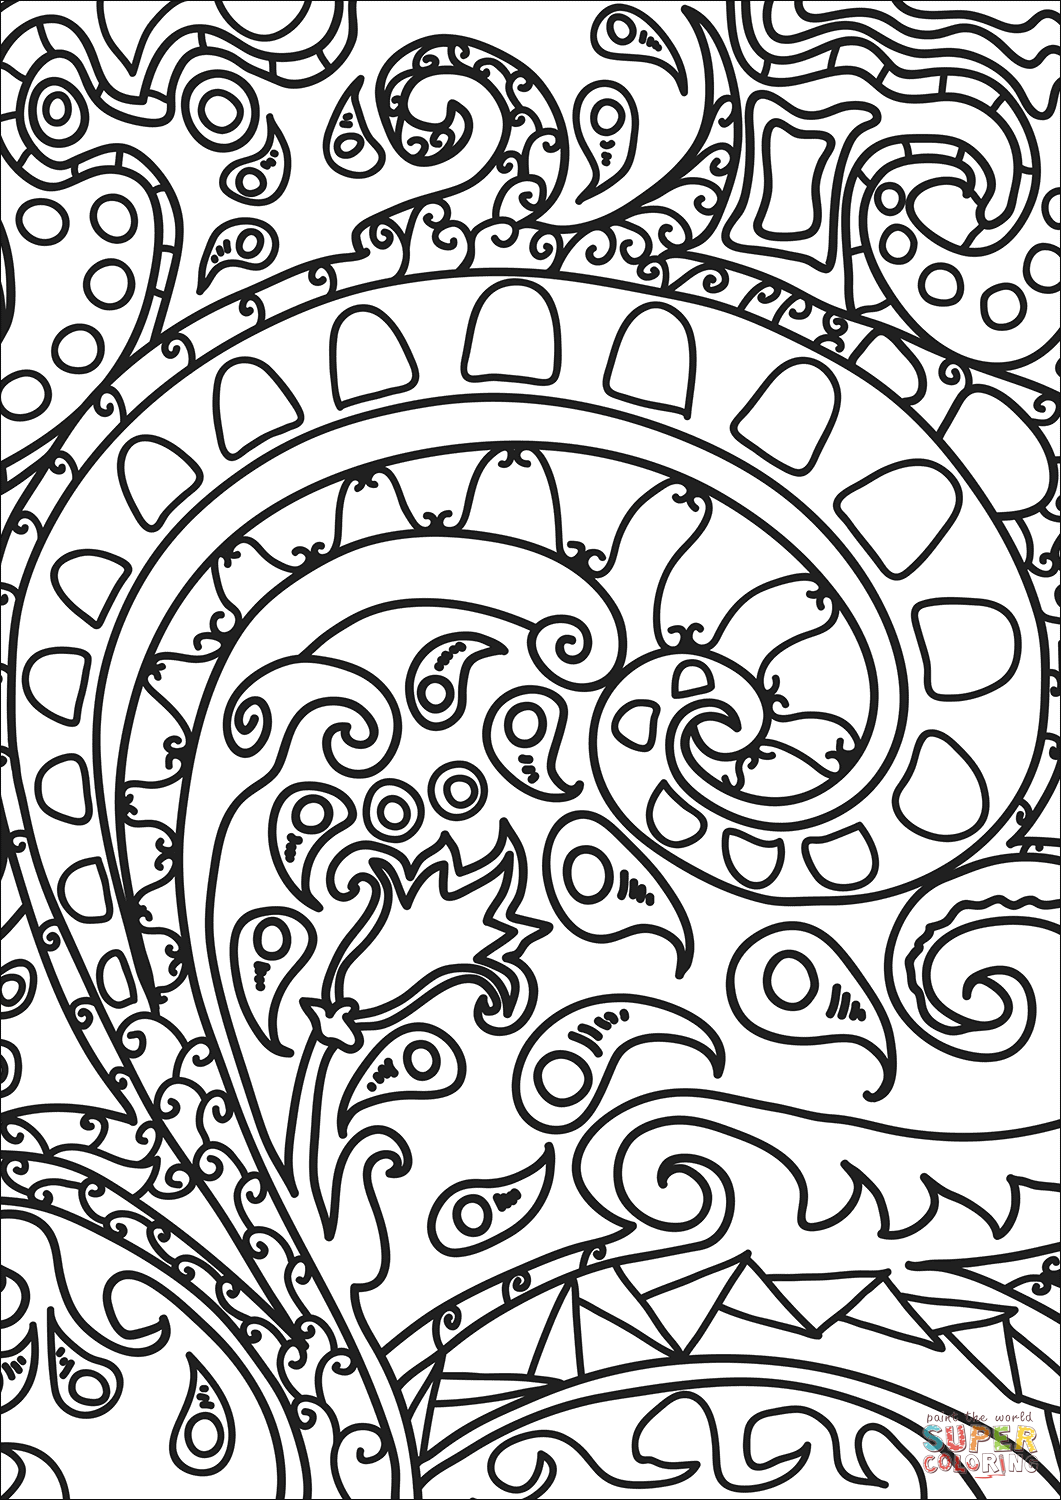 abstract coloring pages to print abstract doodle coloring page free printable coloring pages to print abstract pages coloring